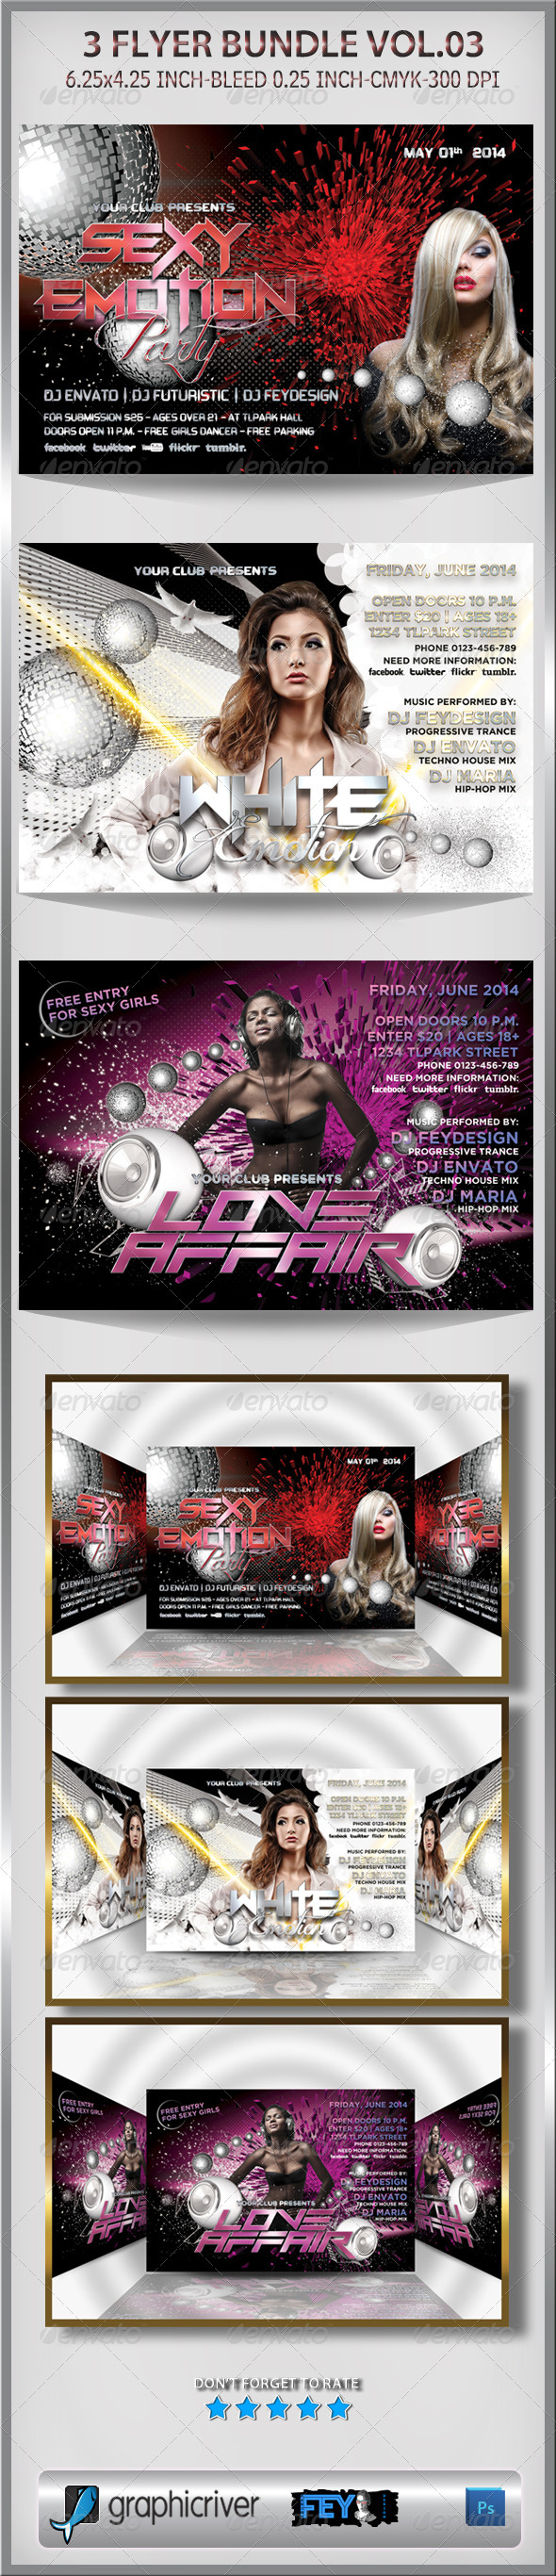 3 Flyer Bundle Vol.03 - Events Flyers